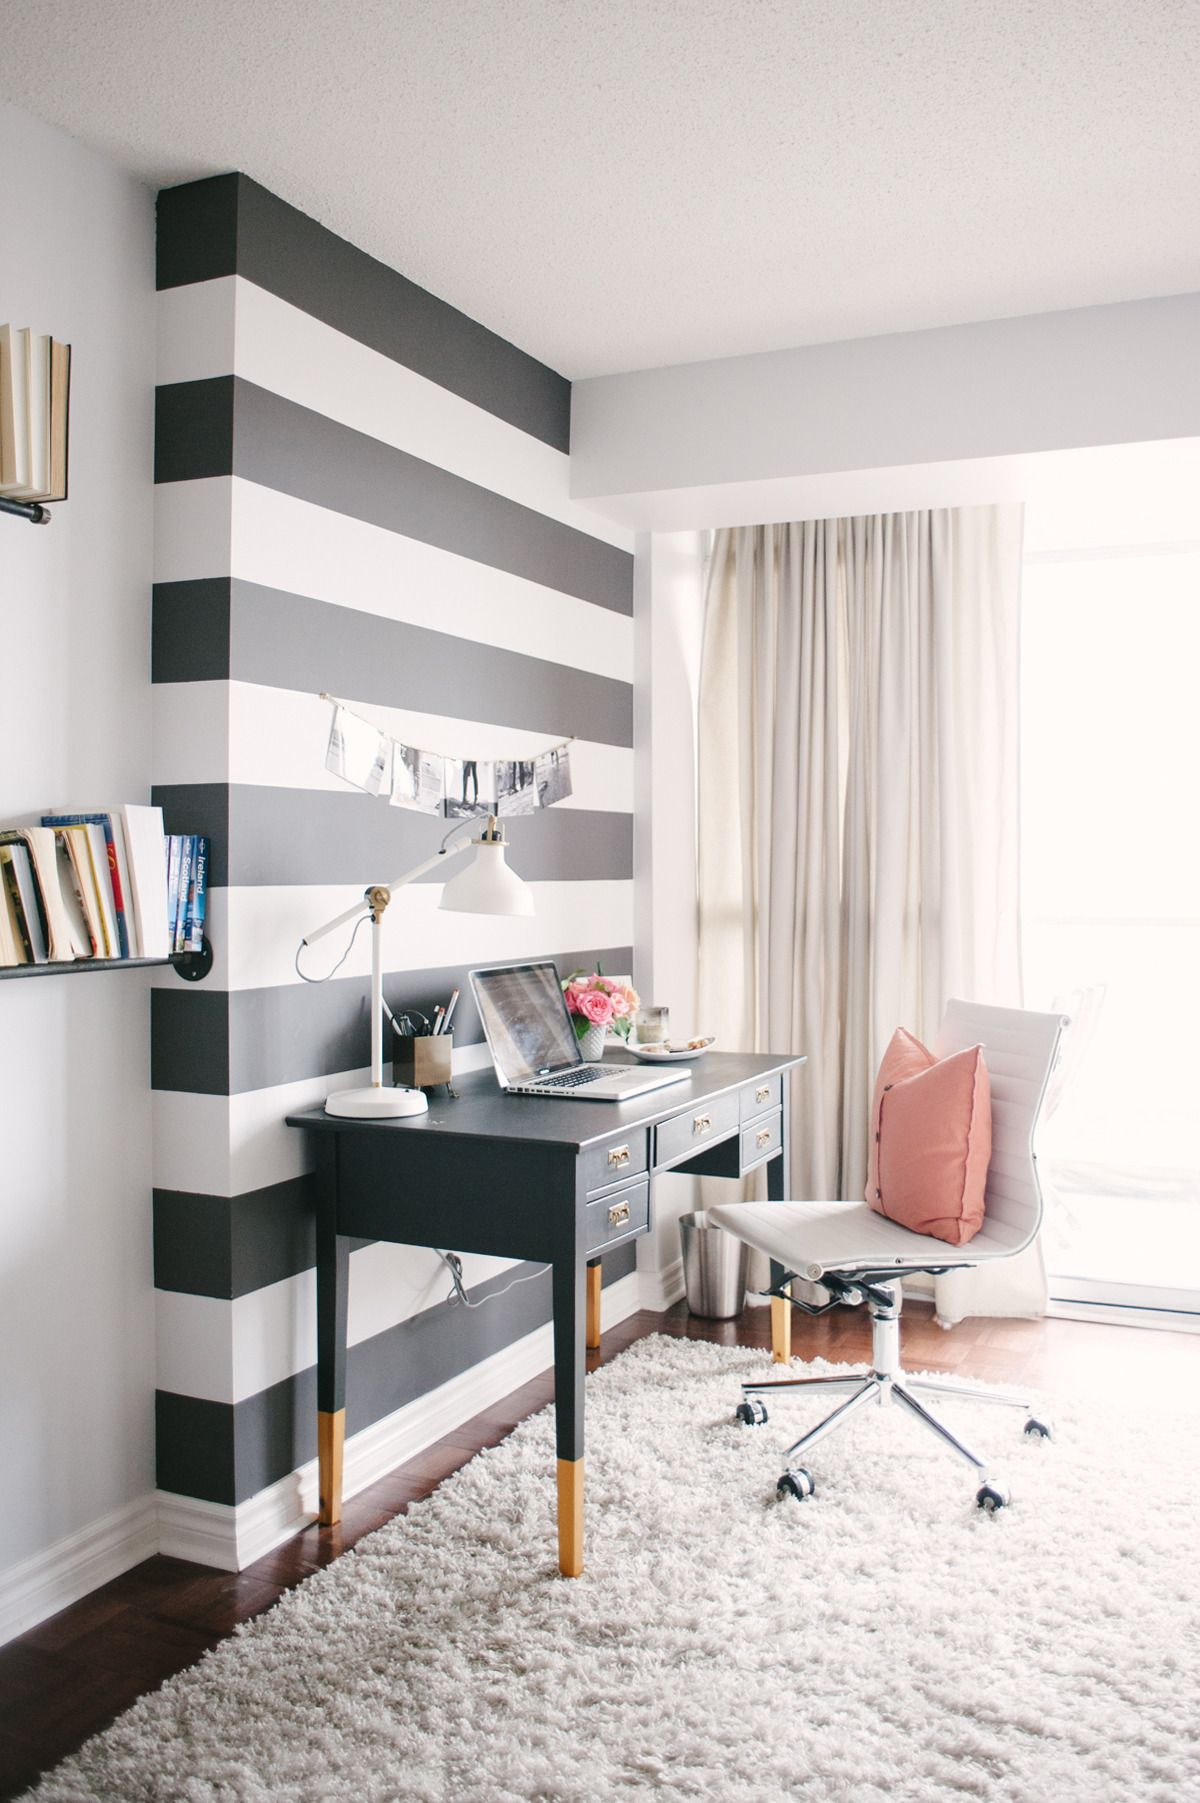 Tour 50 office spaces as chic as they come from studio to home niche to huge loft space they all offer inspiration for planning your own dream office